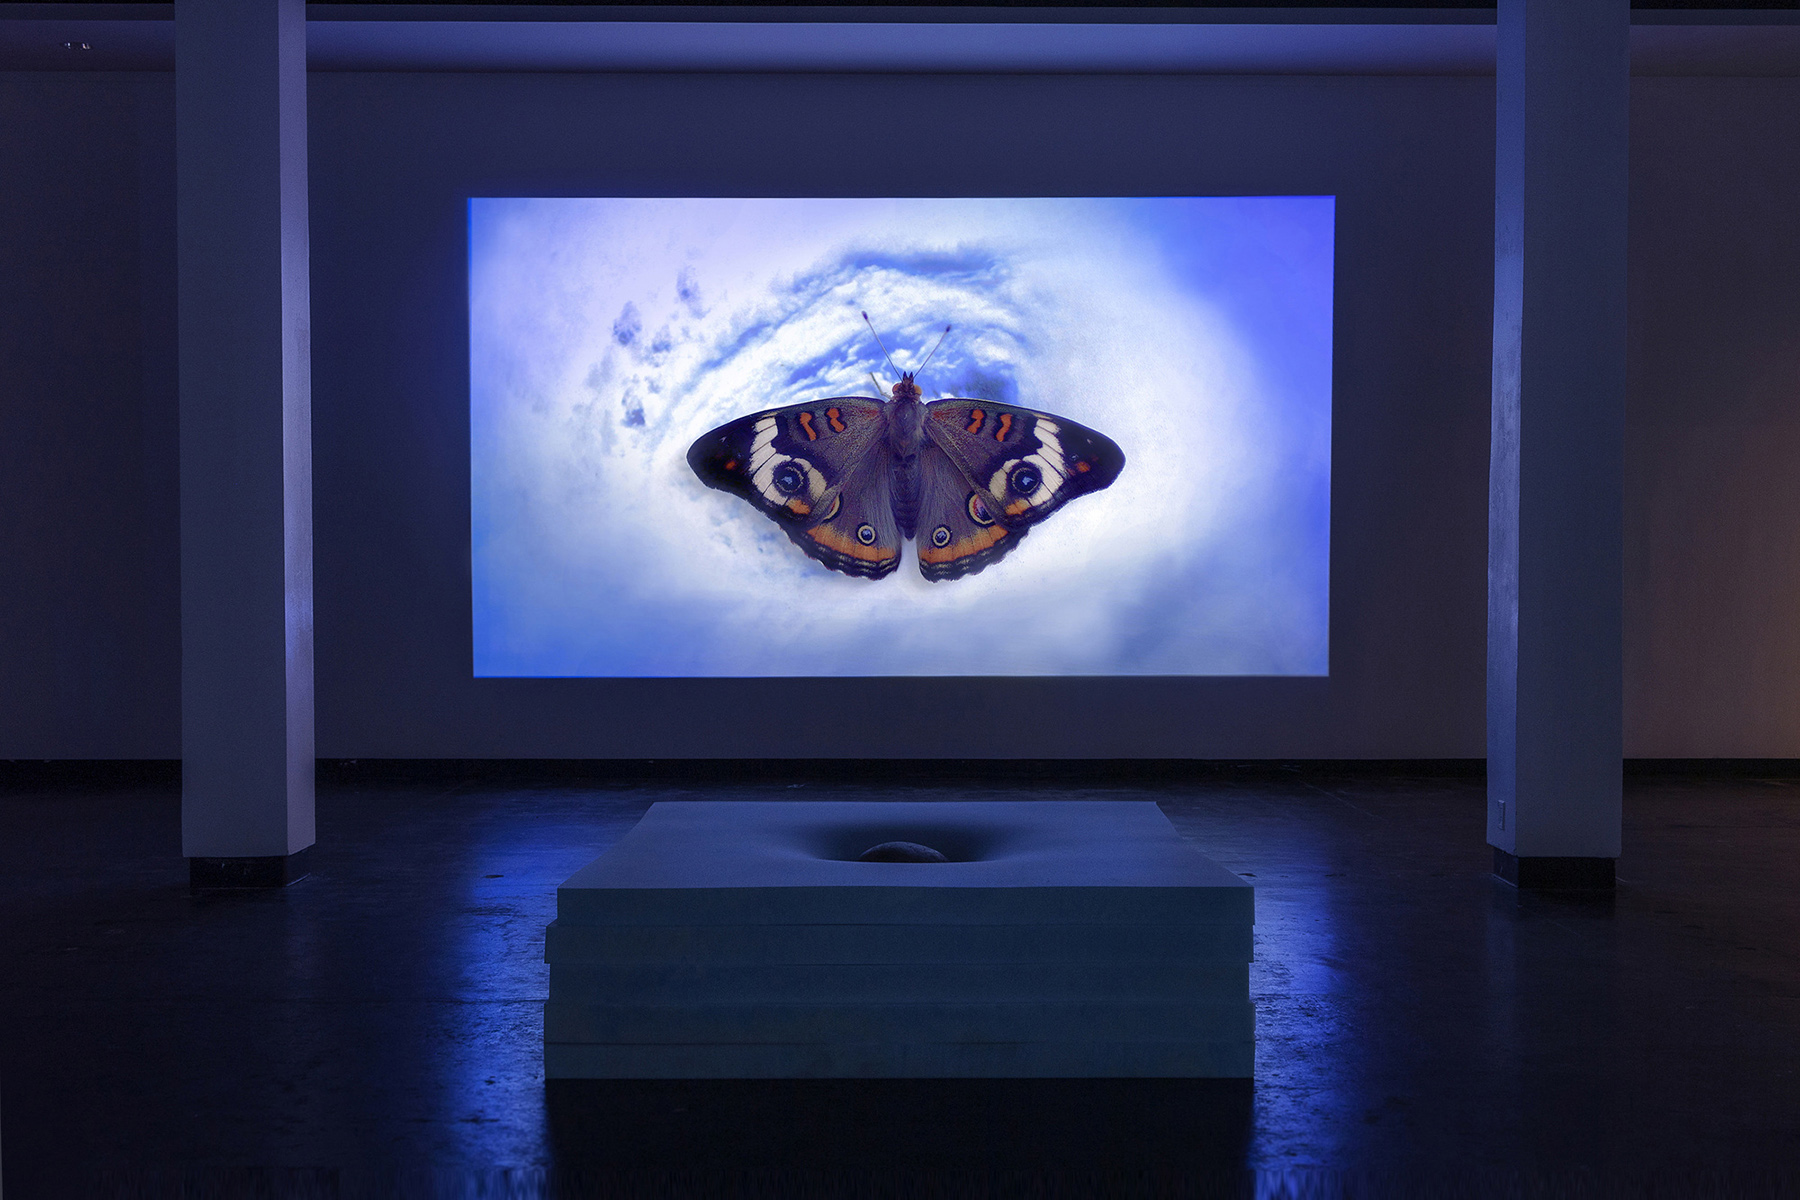 BUTTERFLY BIRTH BED (Video) with HEAD STONE (Sculpture) in the exhibition SKY LOOP, Lawndale Art Center